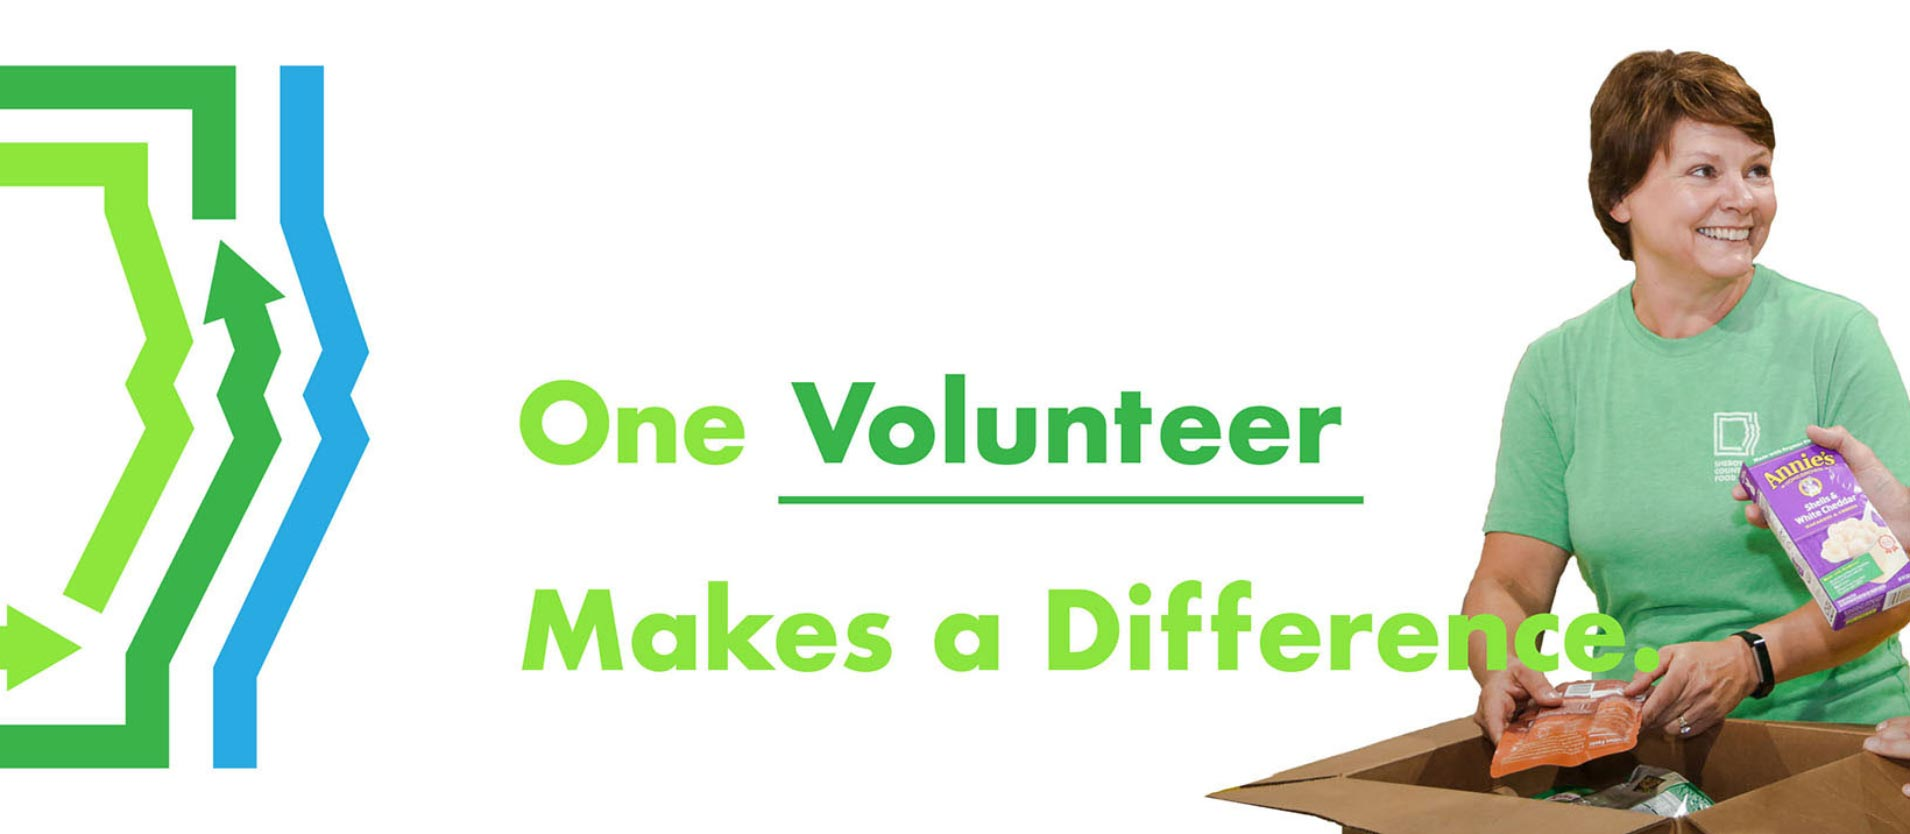 One-Volunteer-Makes-Difference12-1910x834_c_optimised